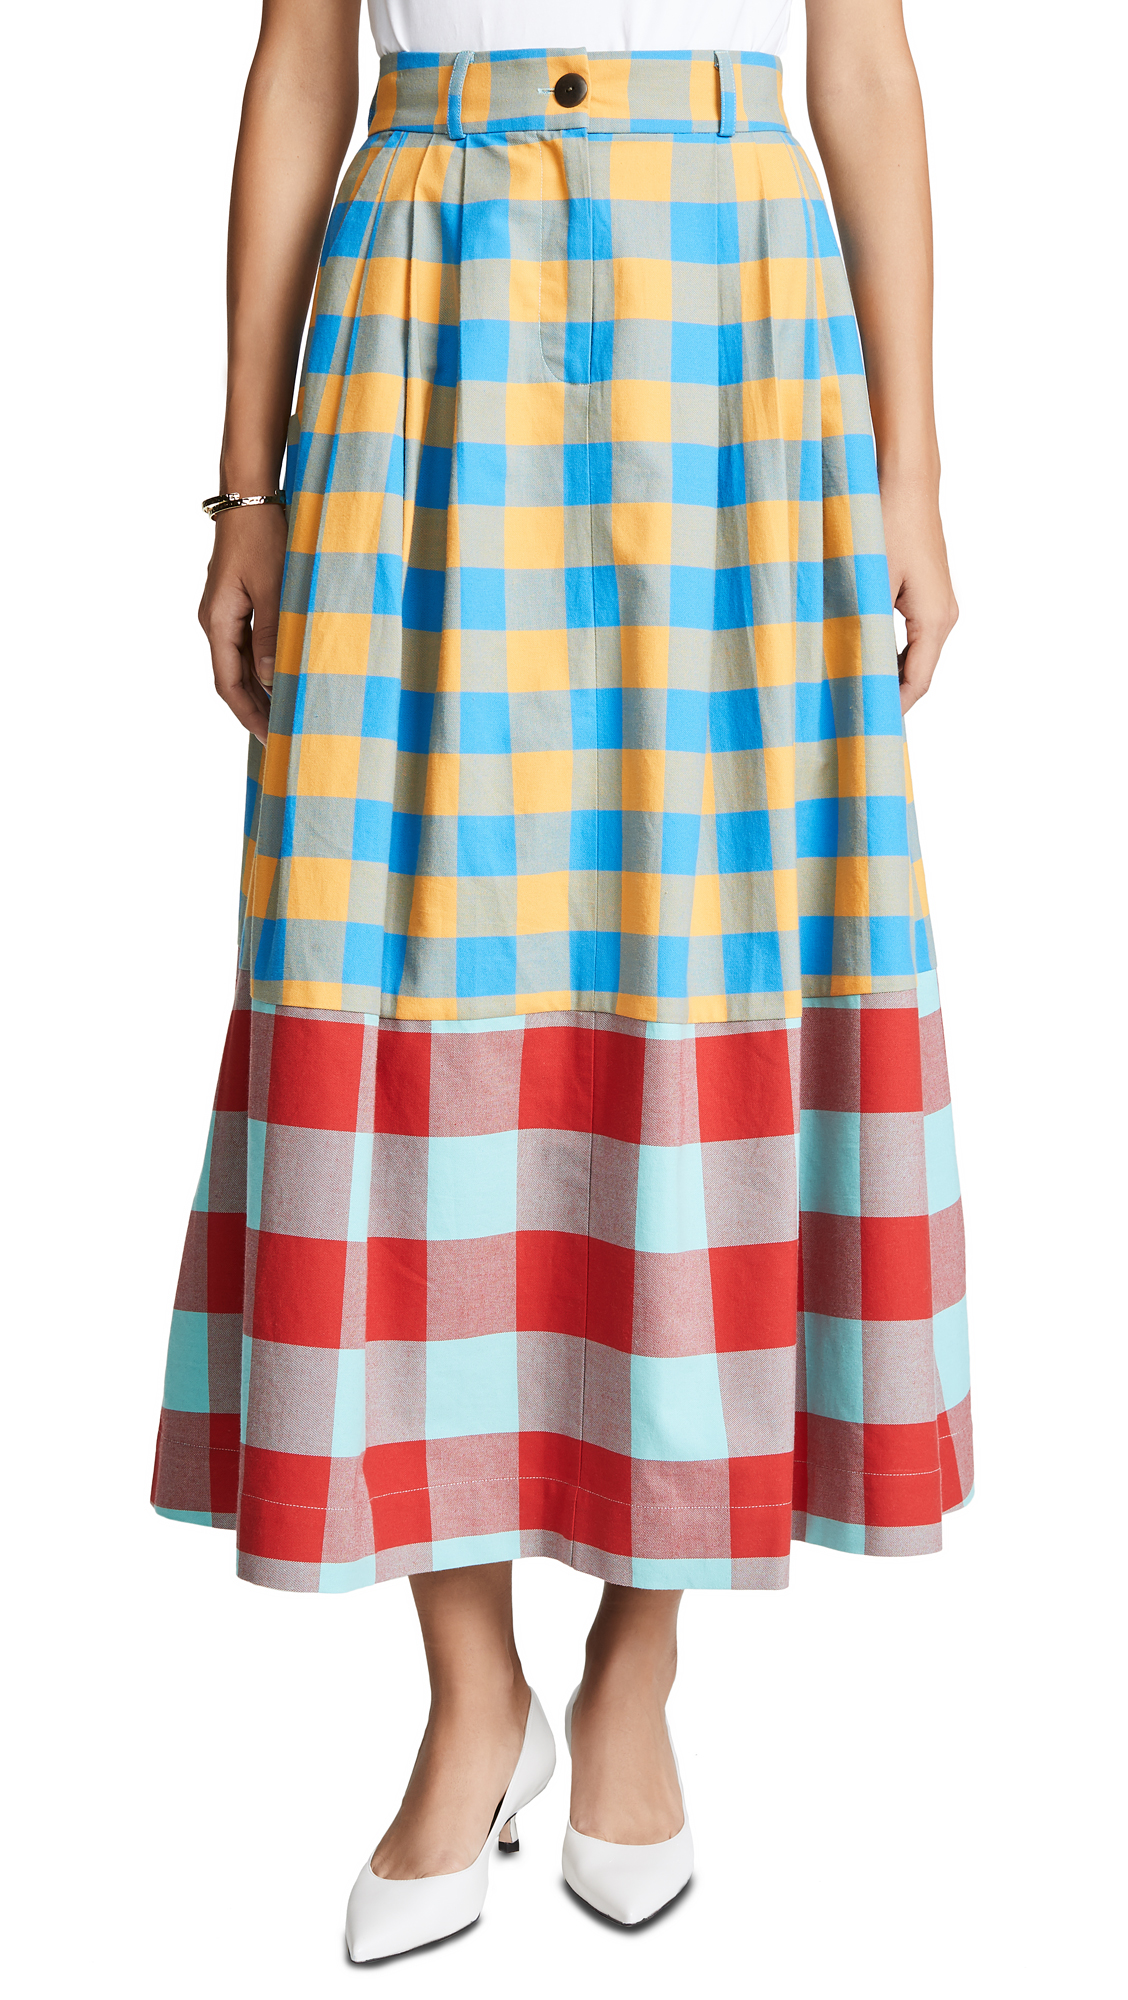 Mara Hoffman Tulay Skirt In Yellow Multi